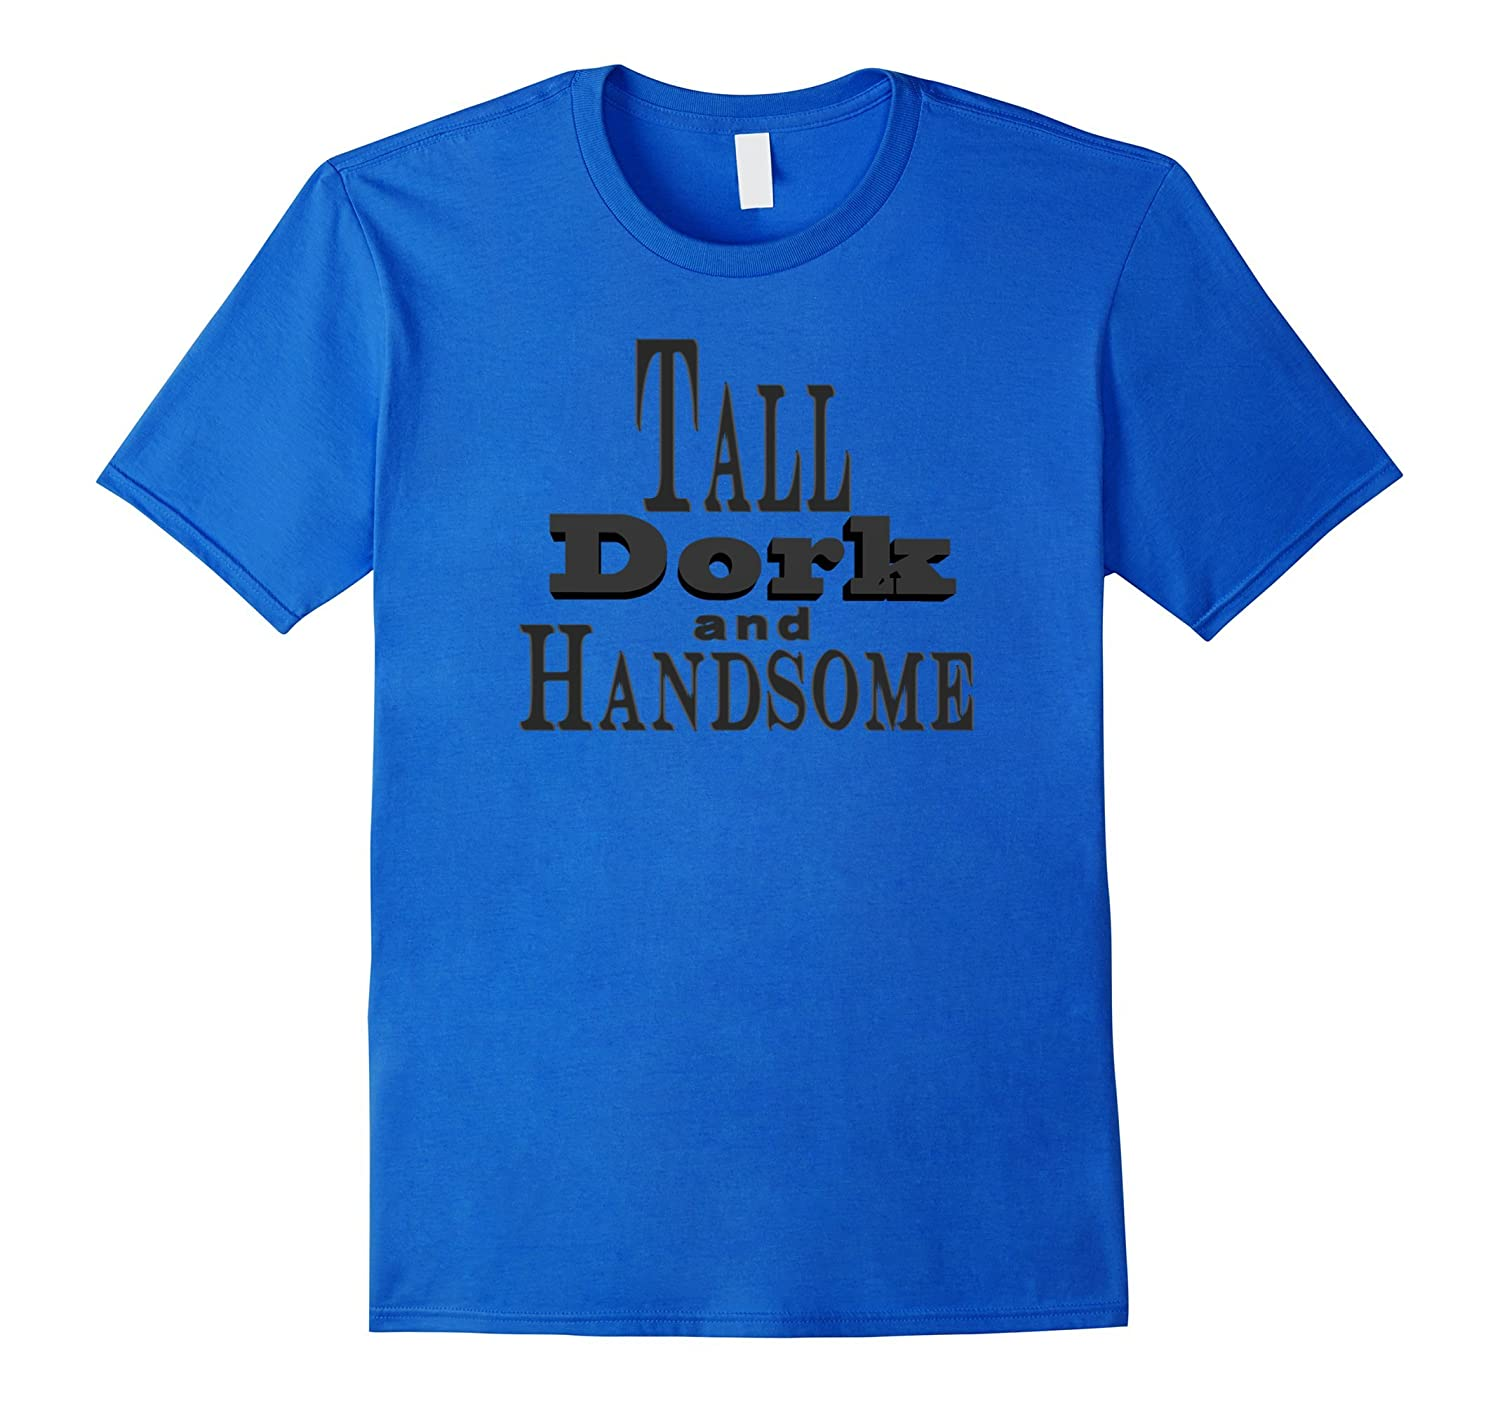 Tall Dork and Handsome Funny T-Shirt